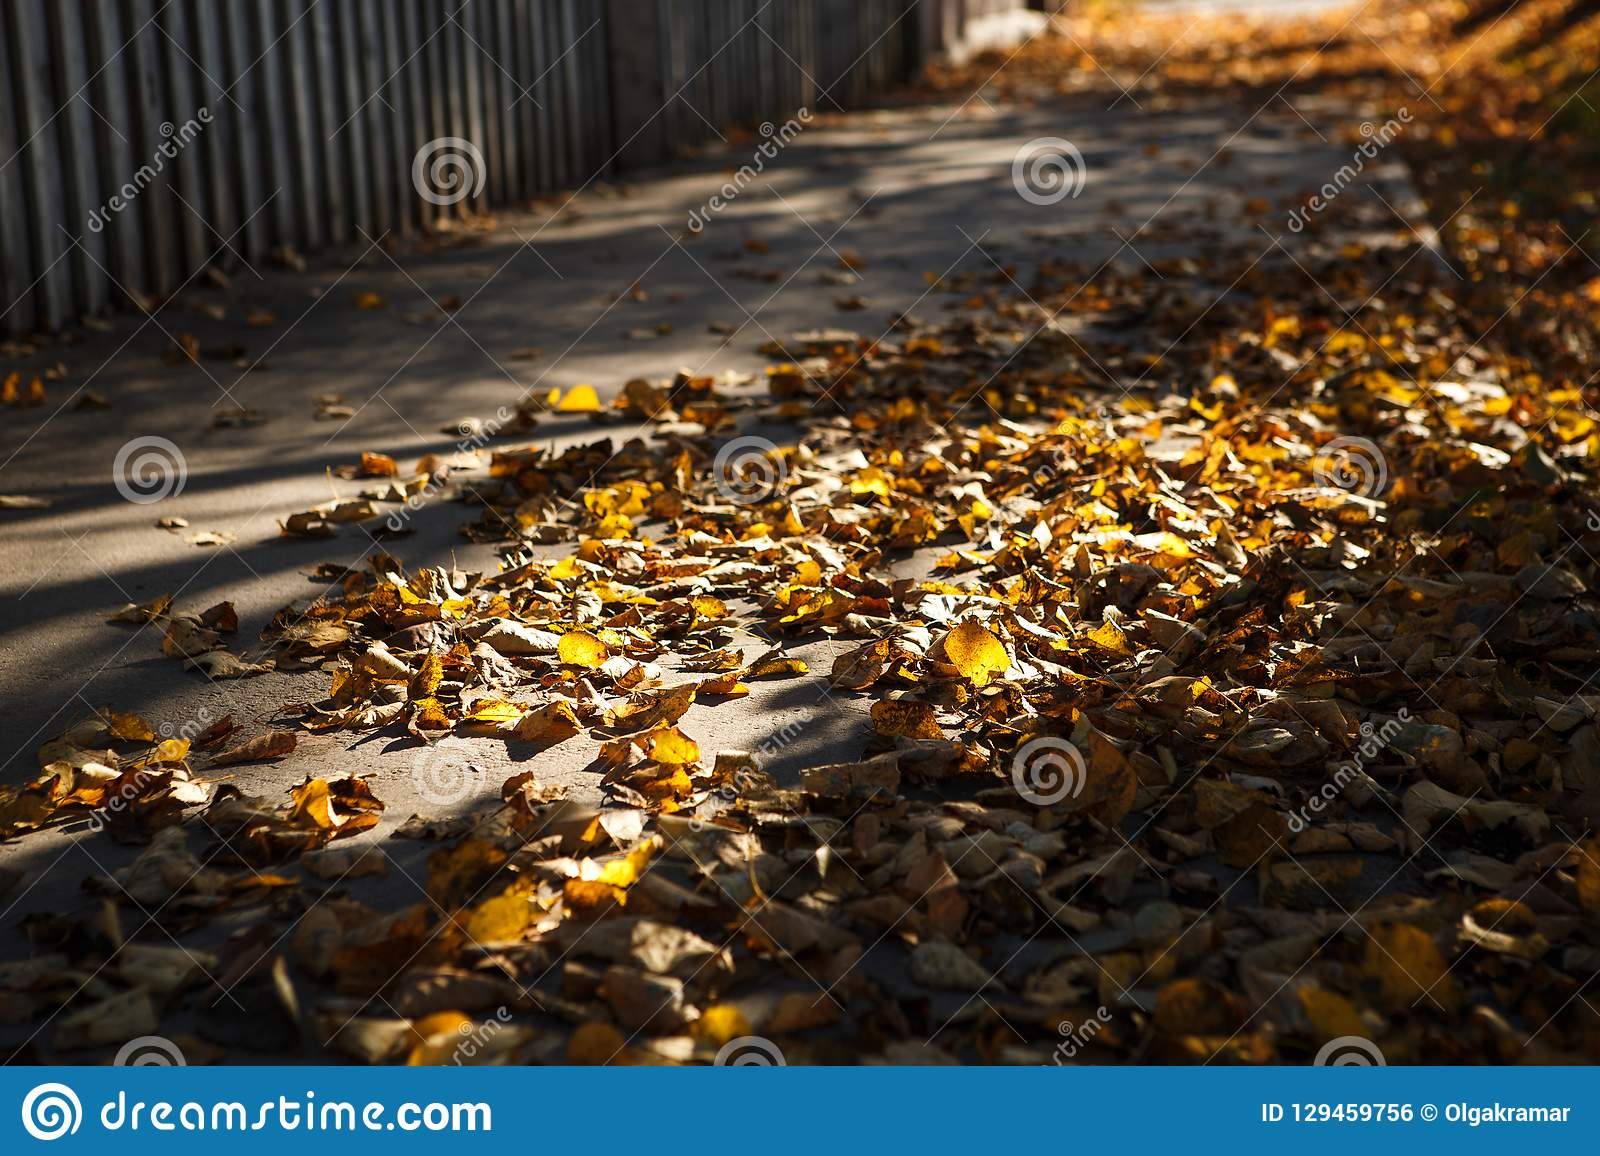 Golden autumn, leaves on earth in the bright light of the sun